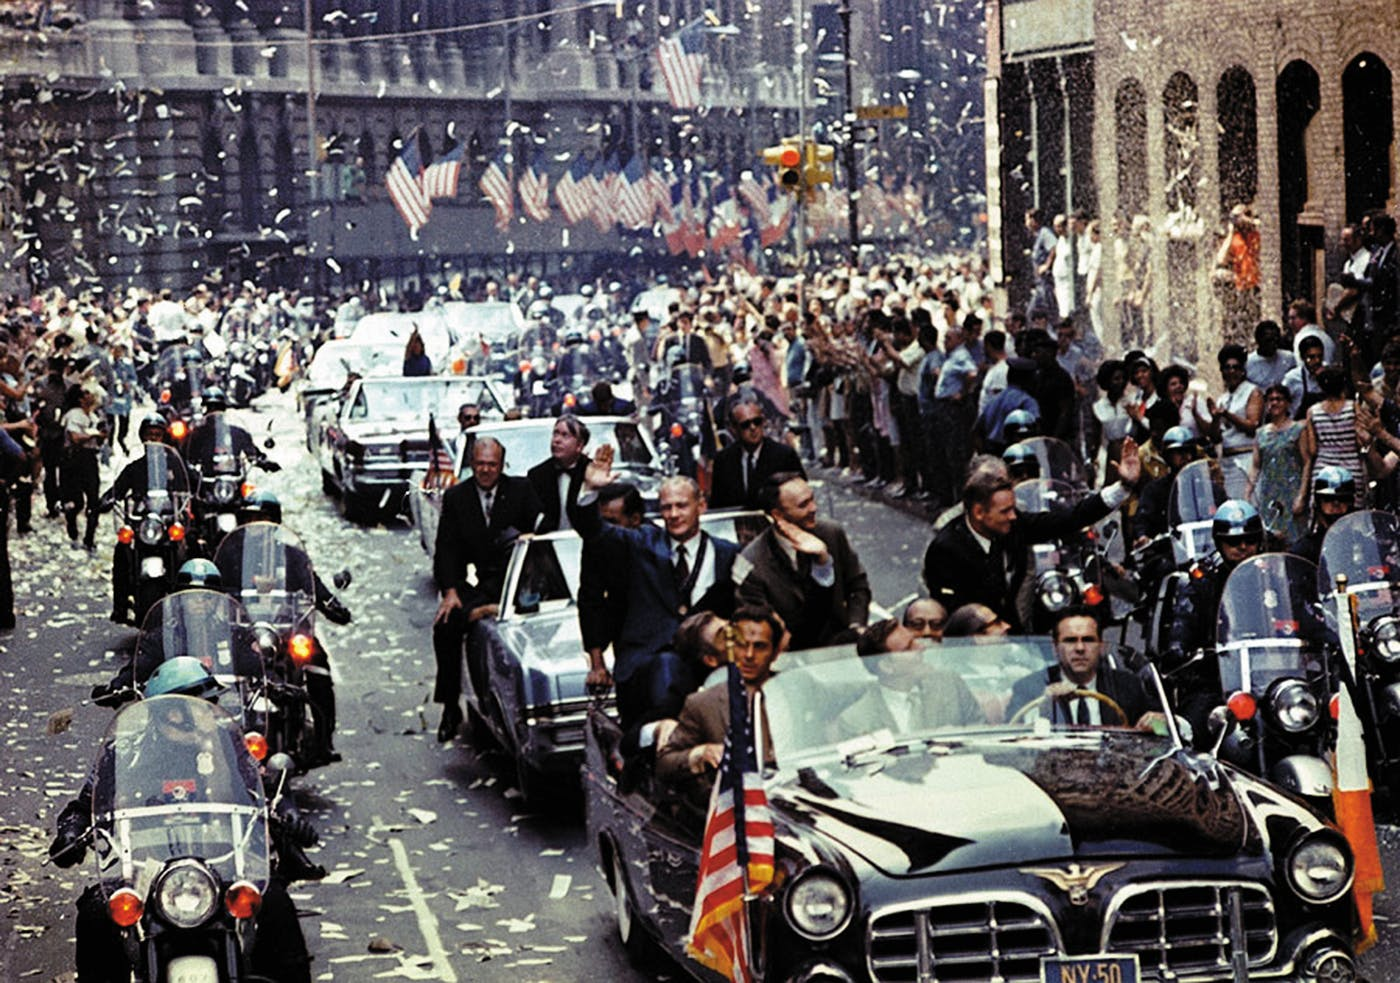 Back home, the Apollo crew was feted with a ticker tape parade in New York City on August 13, 1969.